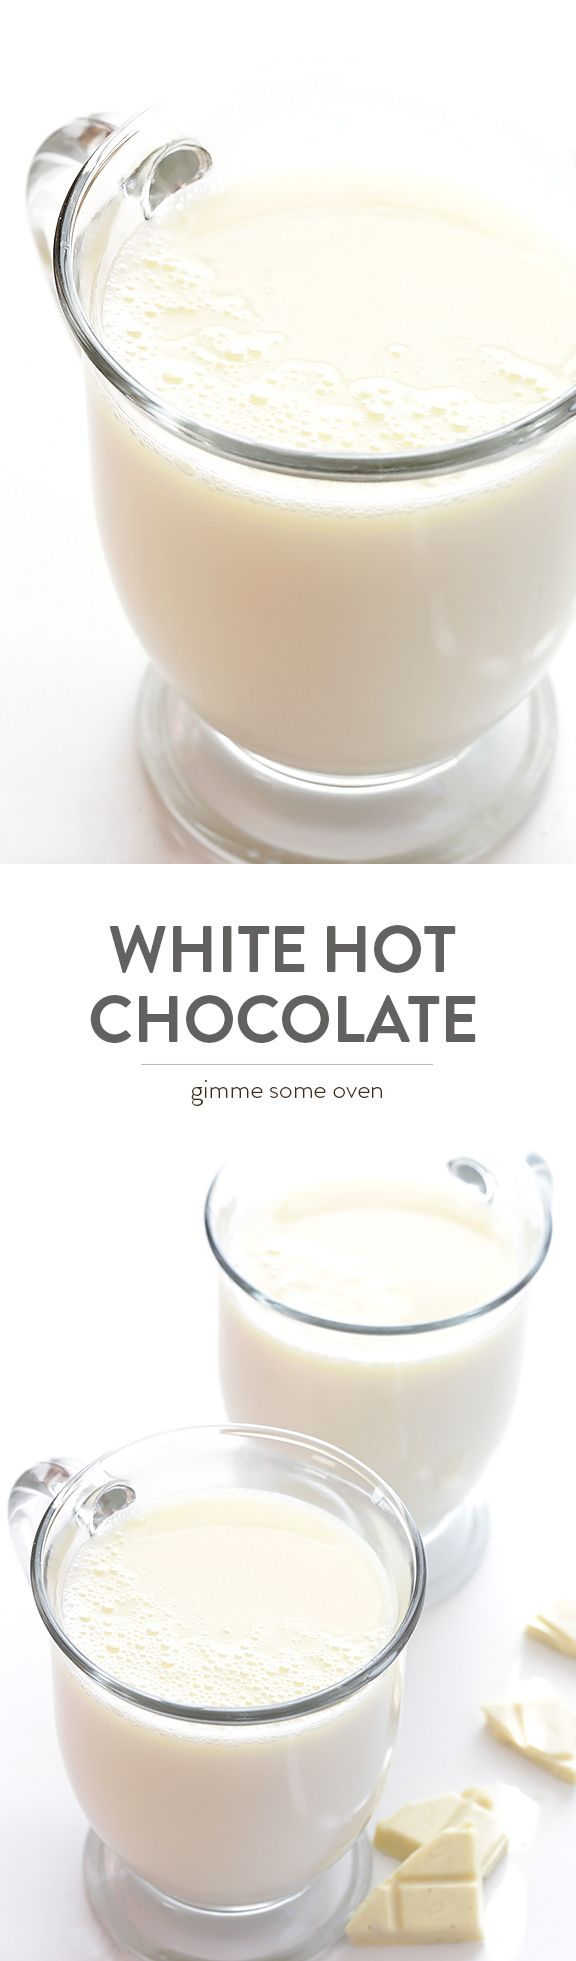 how to make white chocolate drink